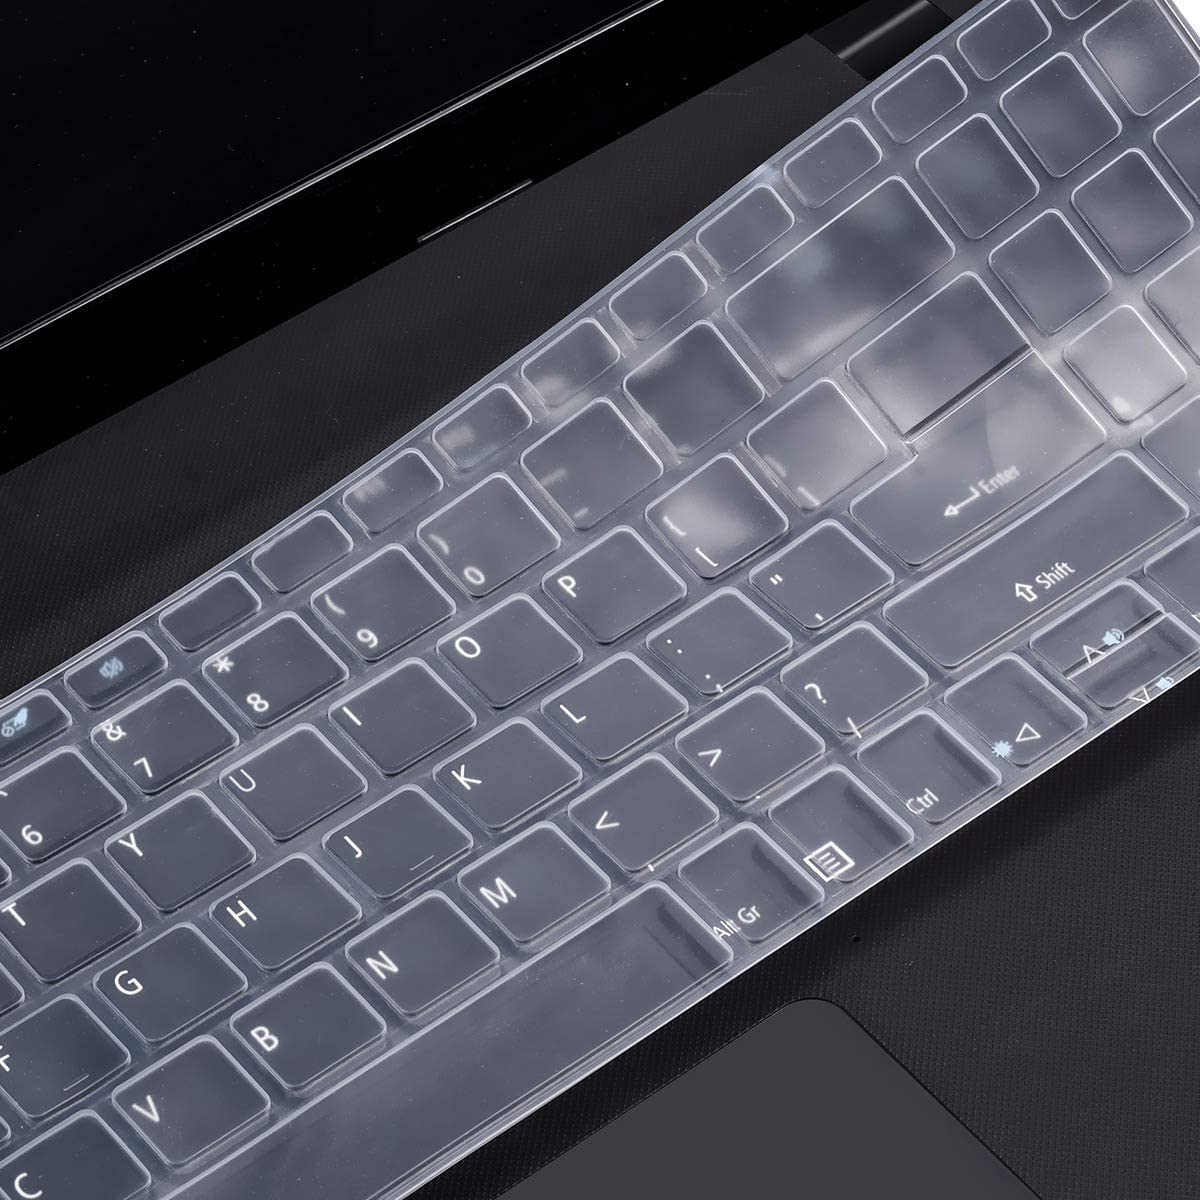 Clear Silicone Keyboard Cover Skin for Acer Aspire 5 Slim Laptop A515-43 A515-54 A515-54G 15.6 Inch, Acer Swift 3 SF315 Protector, Acer Aspire 5 Accessories